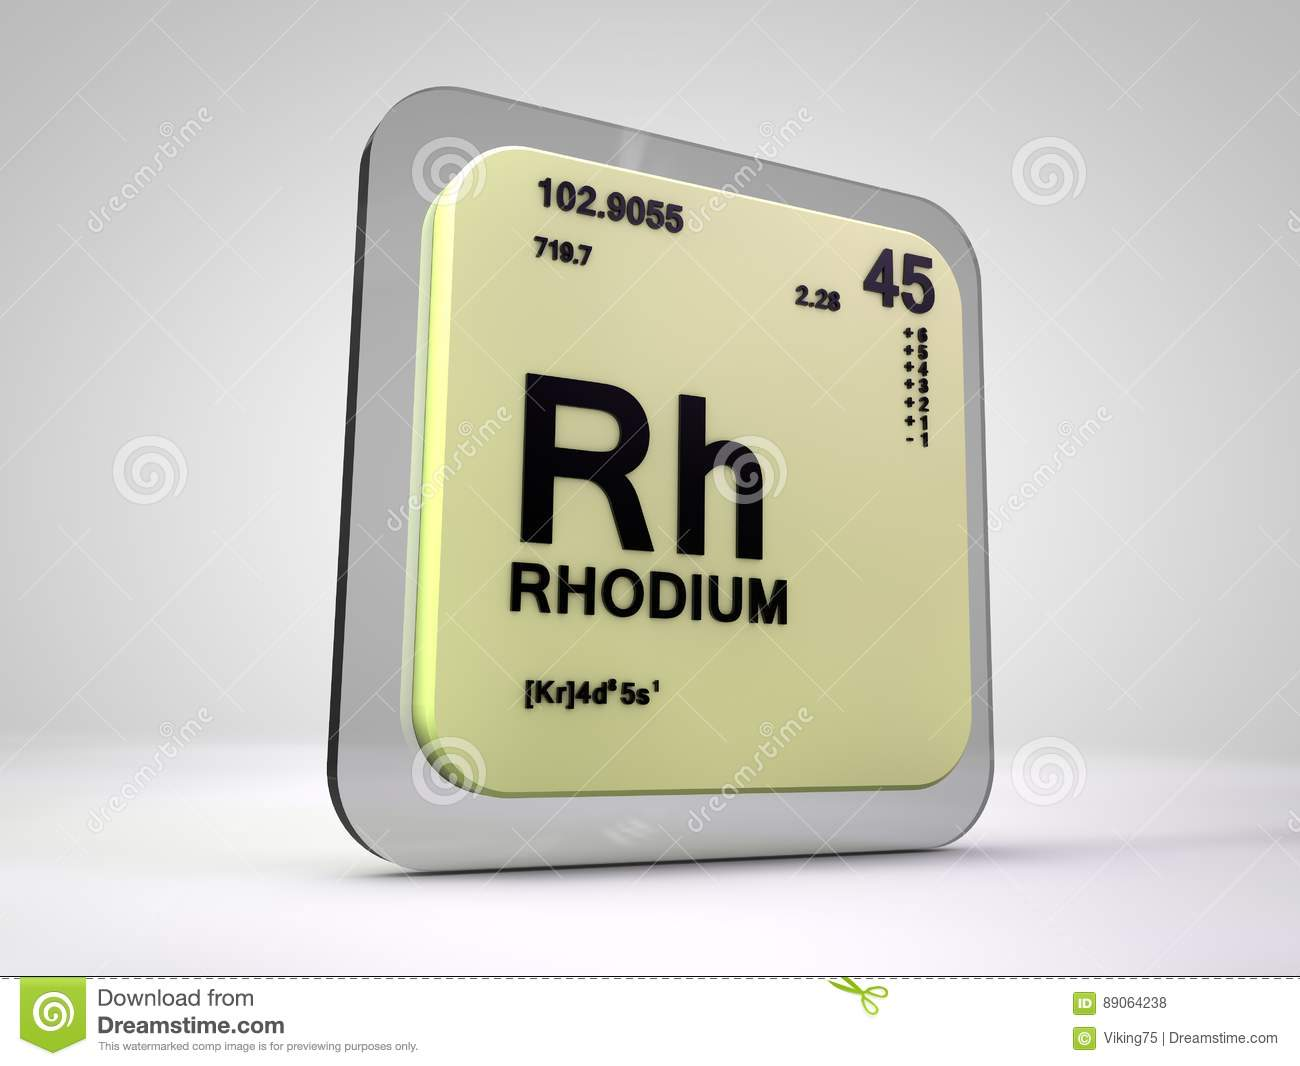 Rhodium rh chemical element periodic table stock illustration rhodium rh chemical element periodic table gamestrikefo Image collections